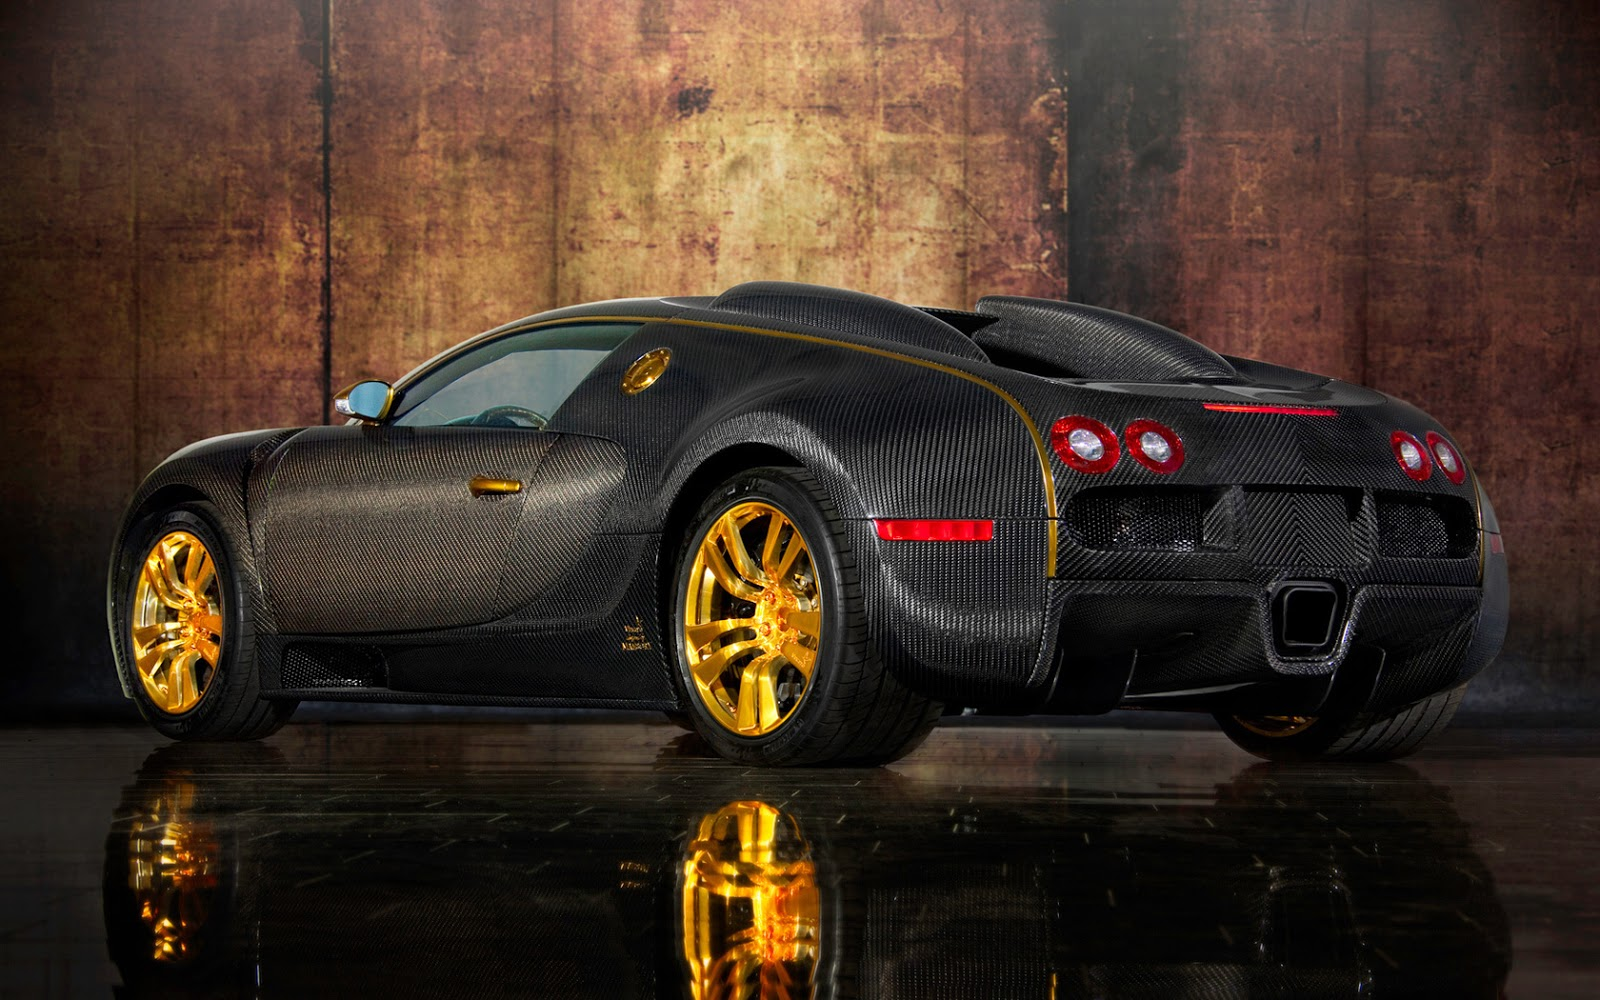 Gold Car Wallpapers: Bugatti Veyron Gold Edition Wallpapers